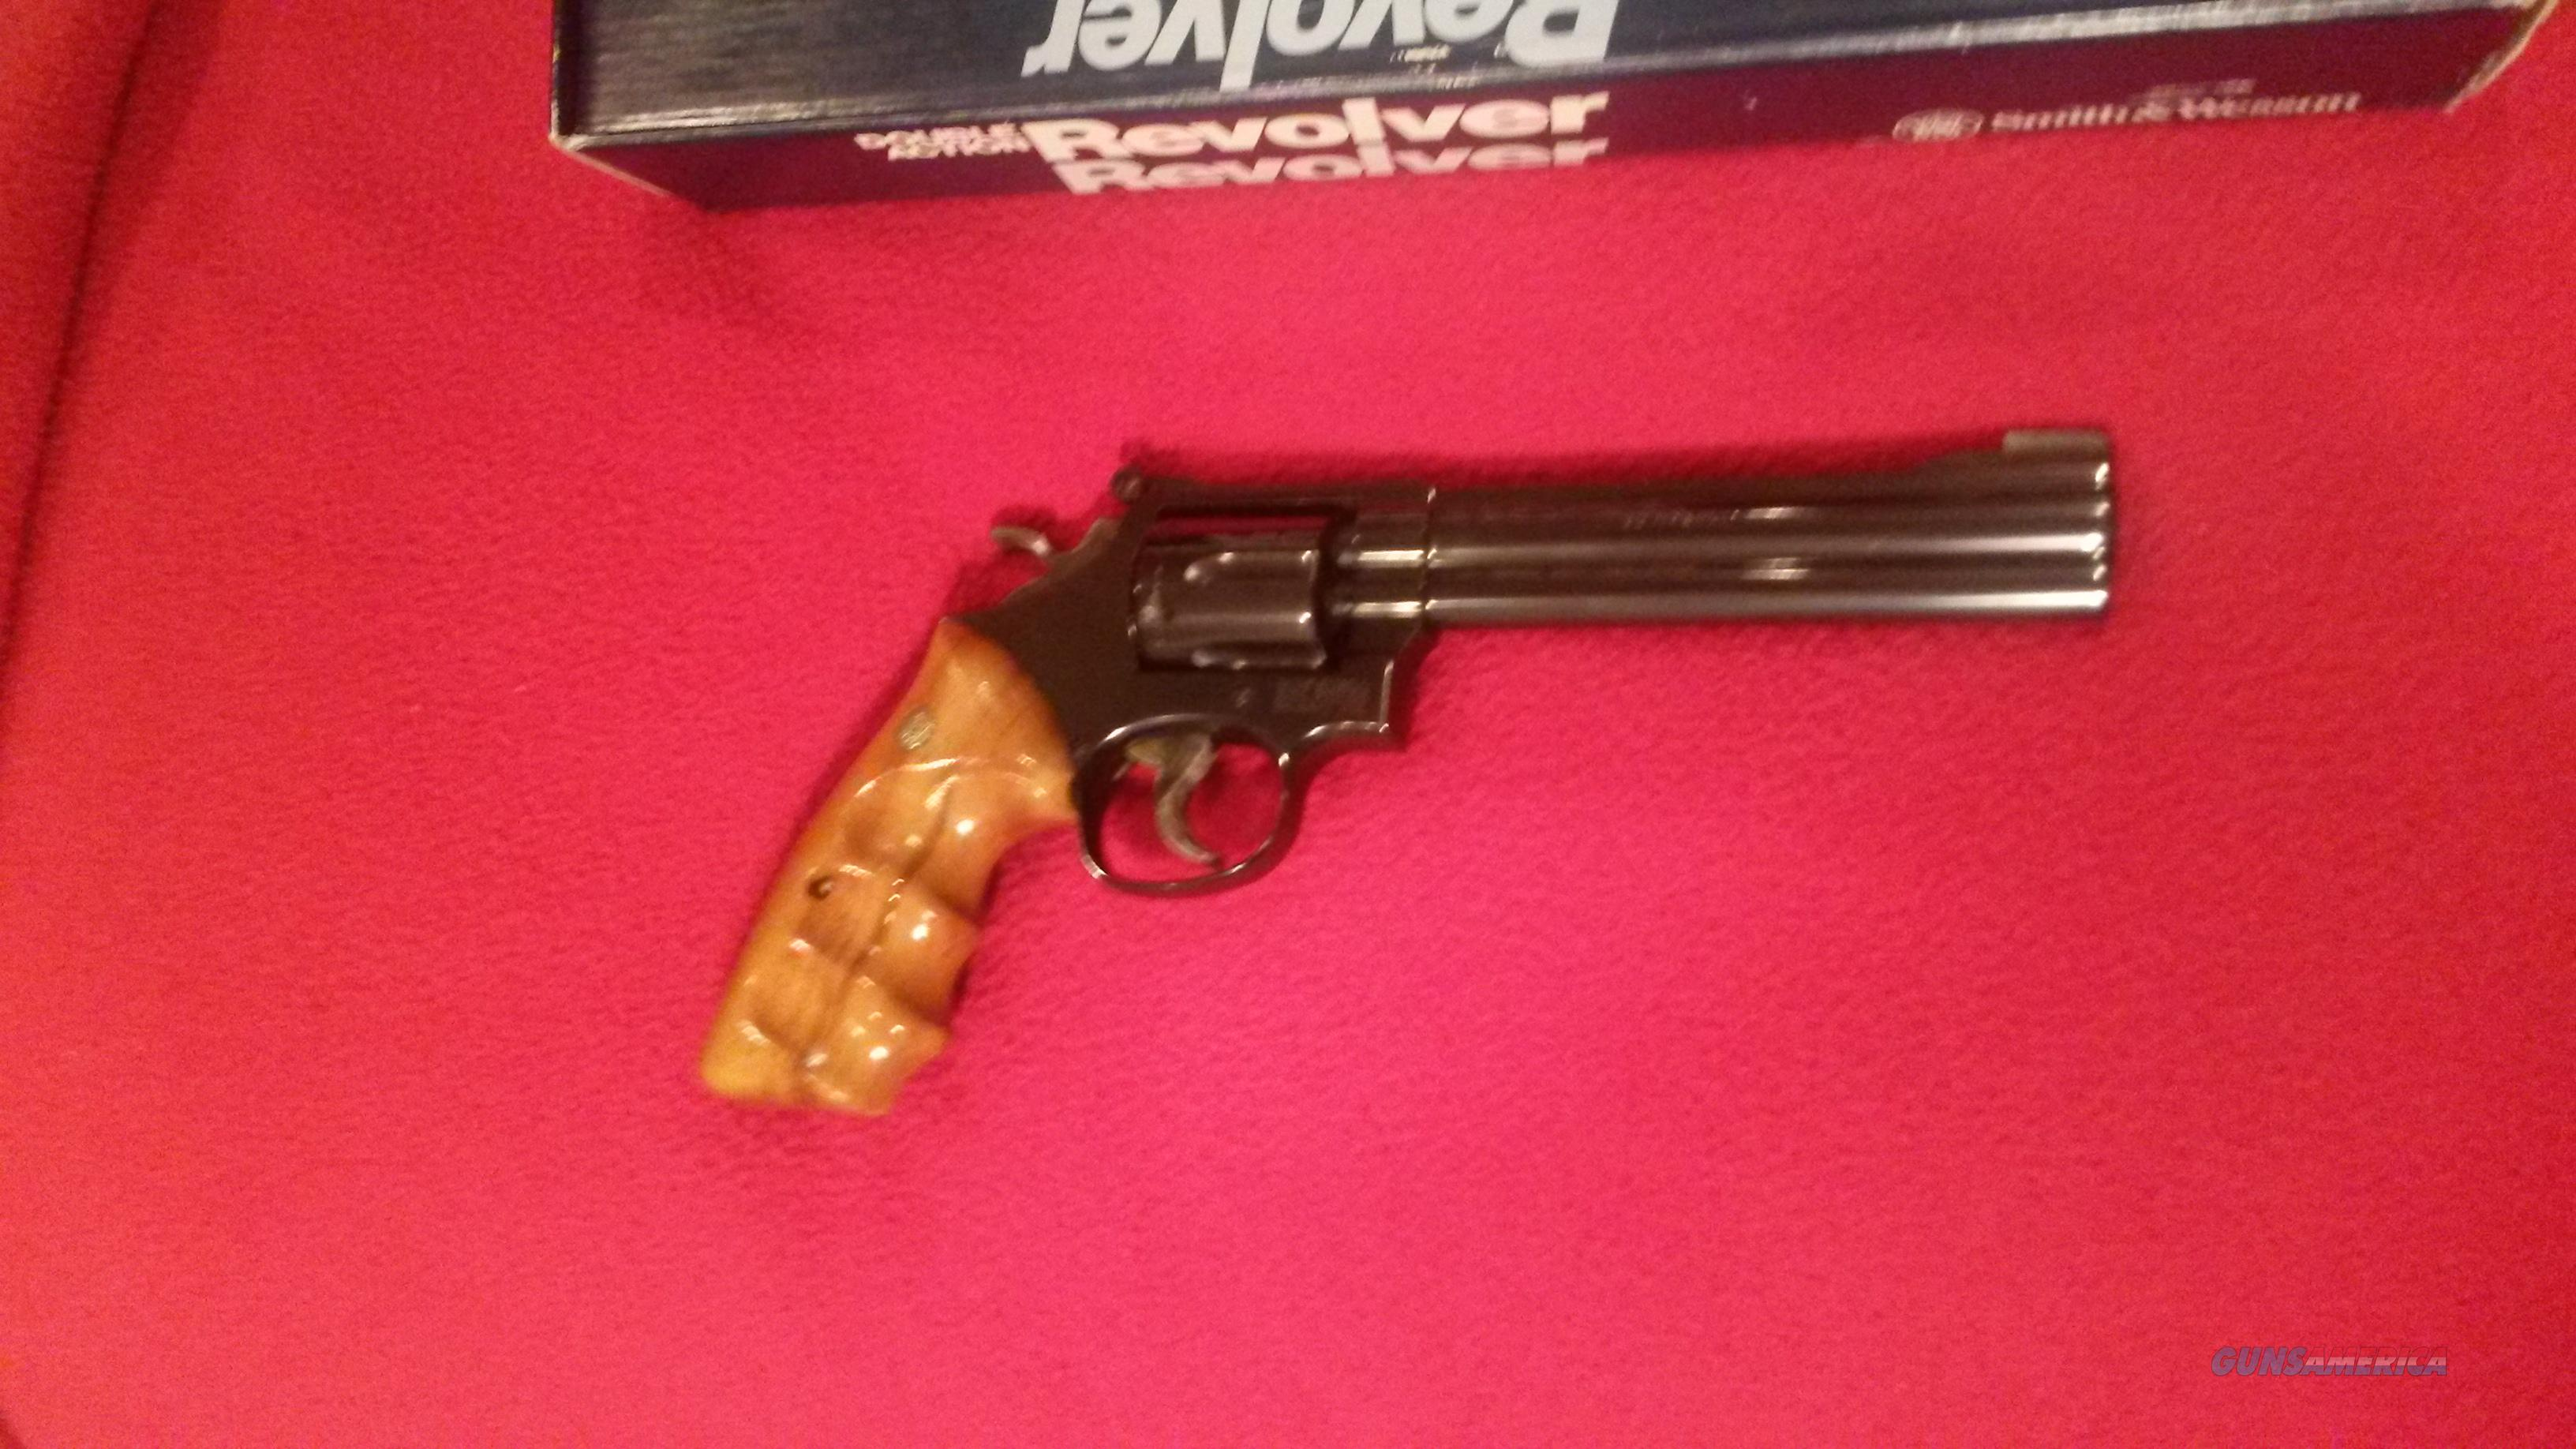 Smith and wesson model 16-4. Revolver .32 Magnum NIB  Guns > Pistols > Smith & Wesson Revolvers > Full Frame Revolver